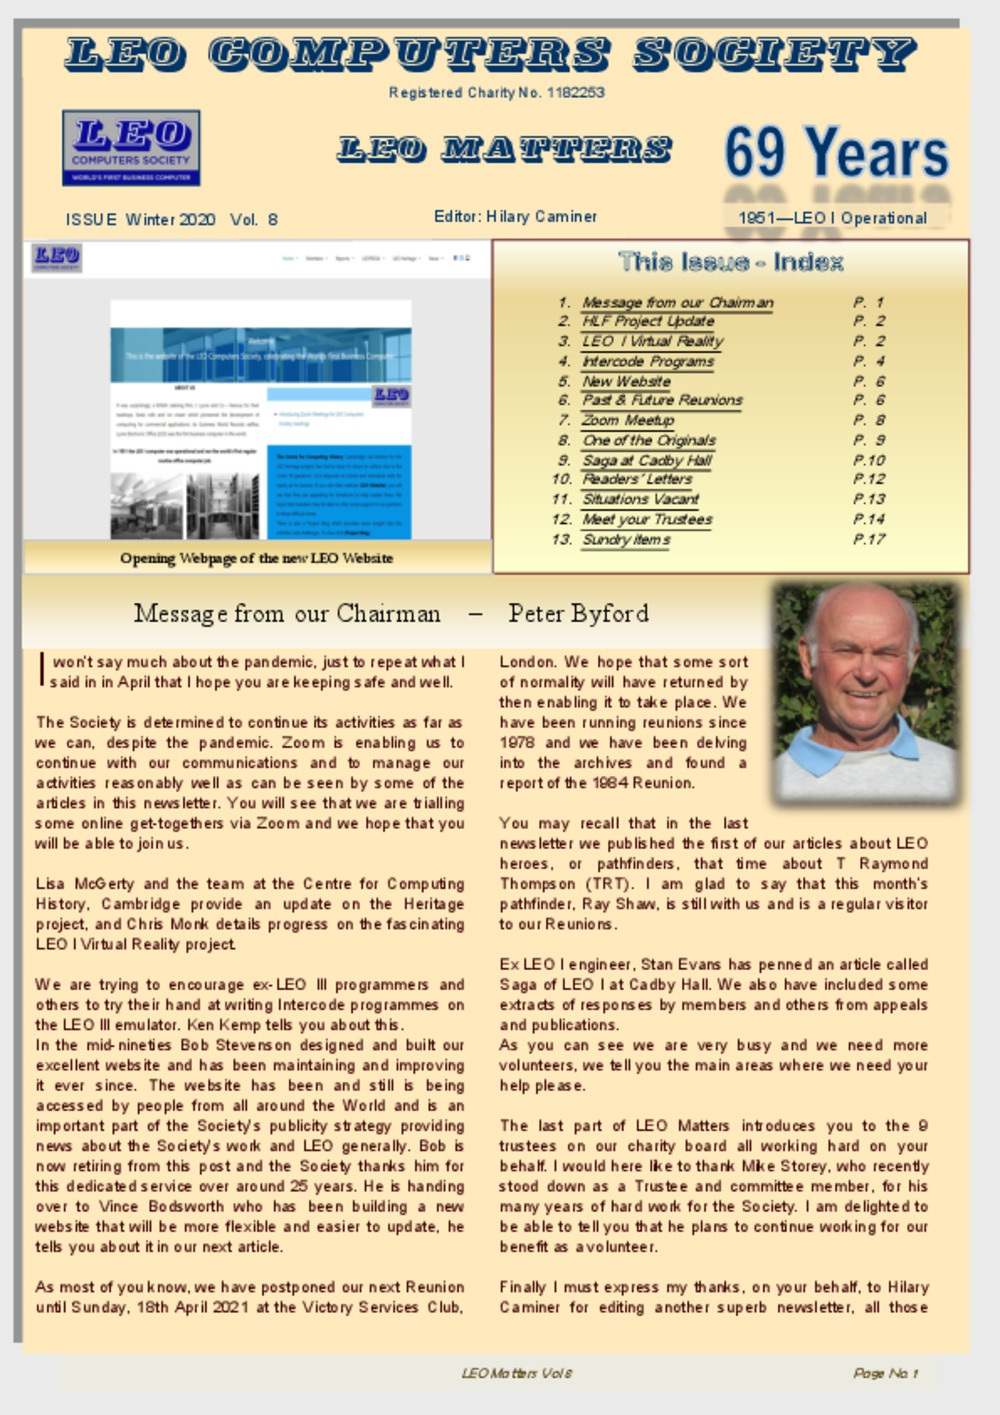 Article: LEO Computers Society, LEO MATTERS, Issue Autumn 2020  Vol. 8